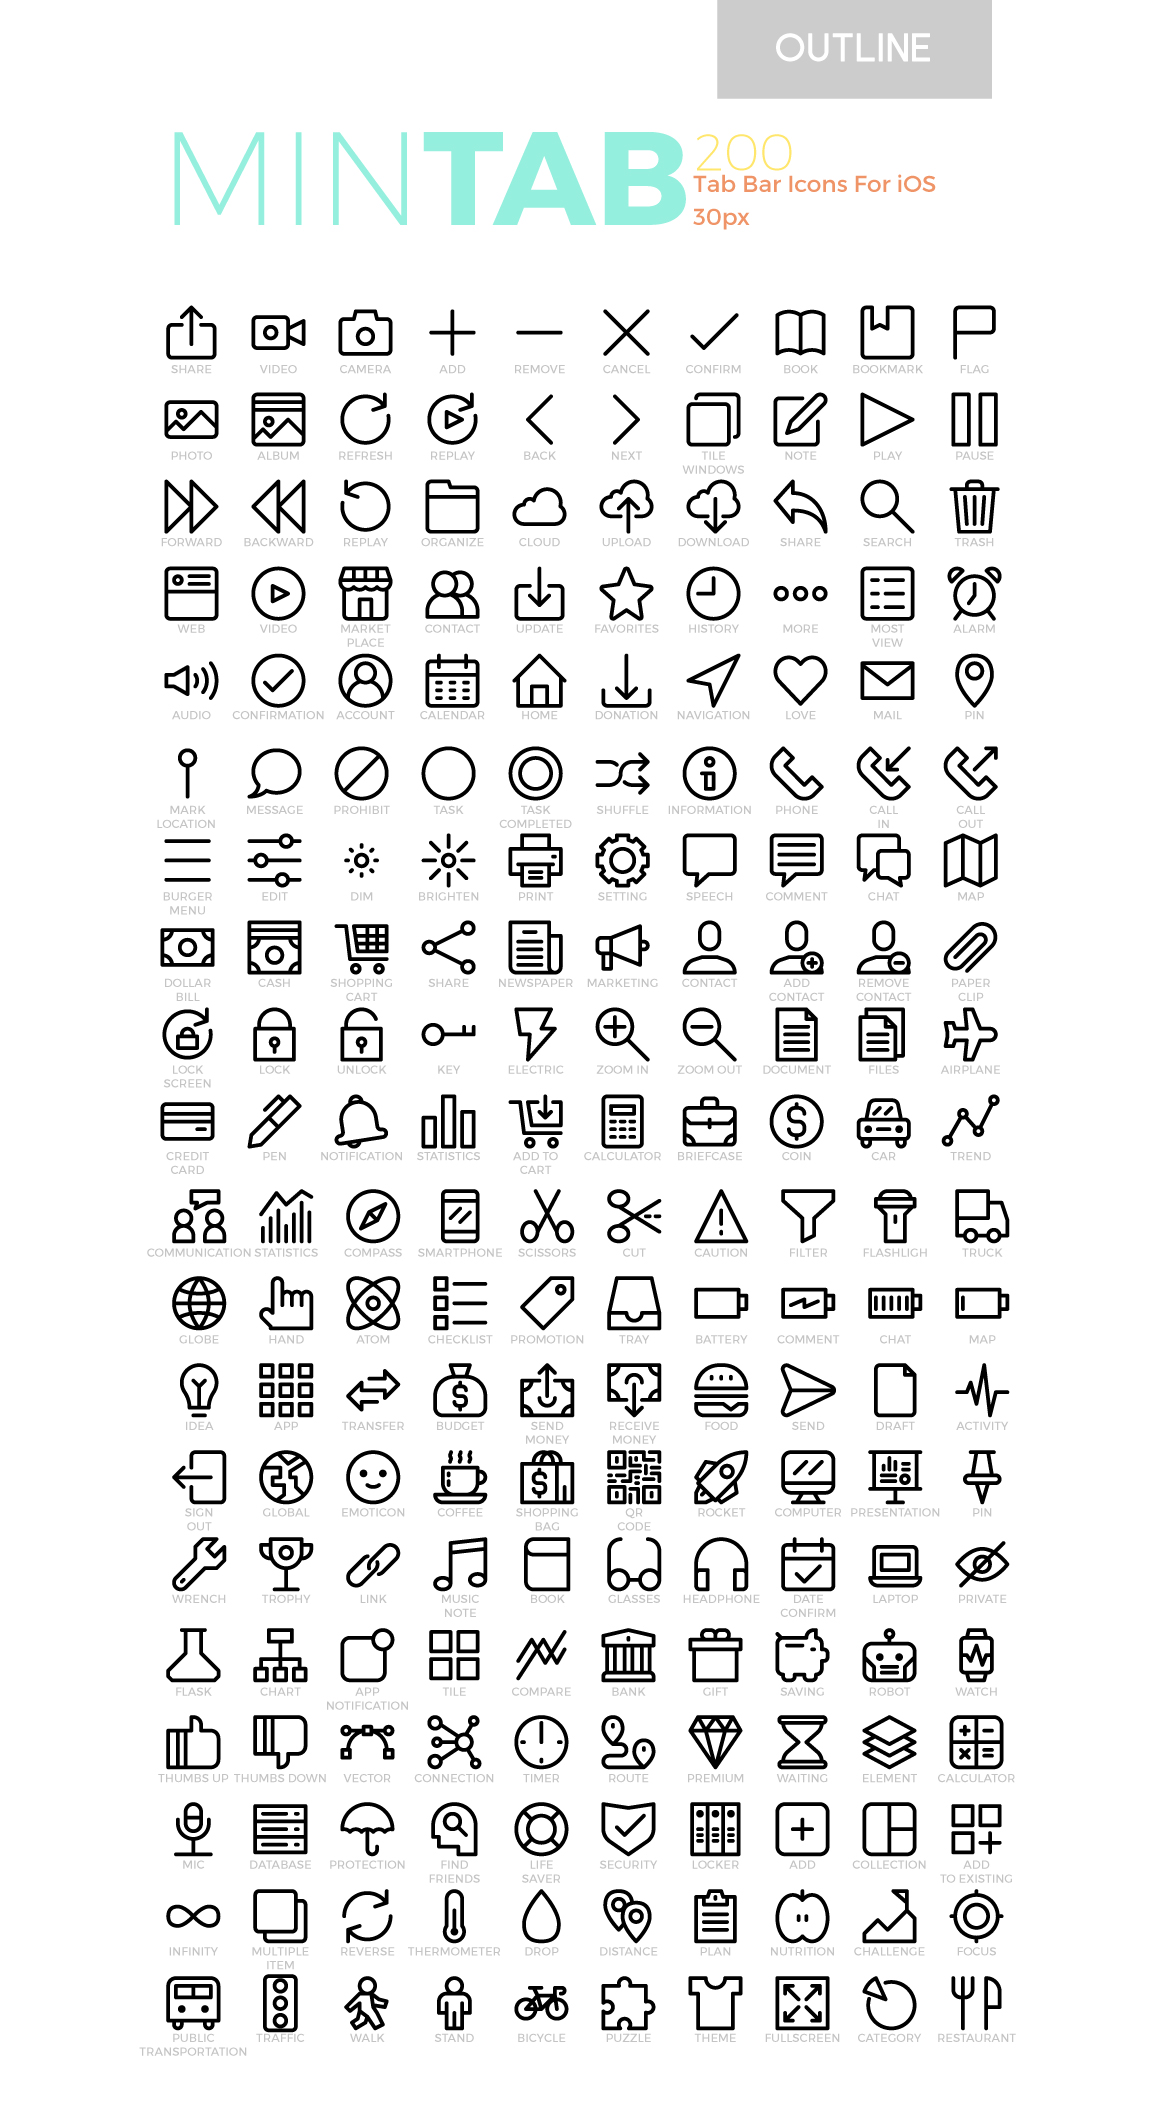 Download Free Mintab Minimal Tab Bar Icons For Ios Graphic By Becrispk for Cricut Explore, Silhouette and other cutting machines.